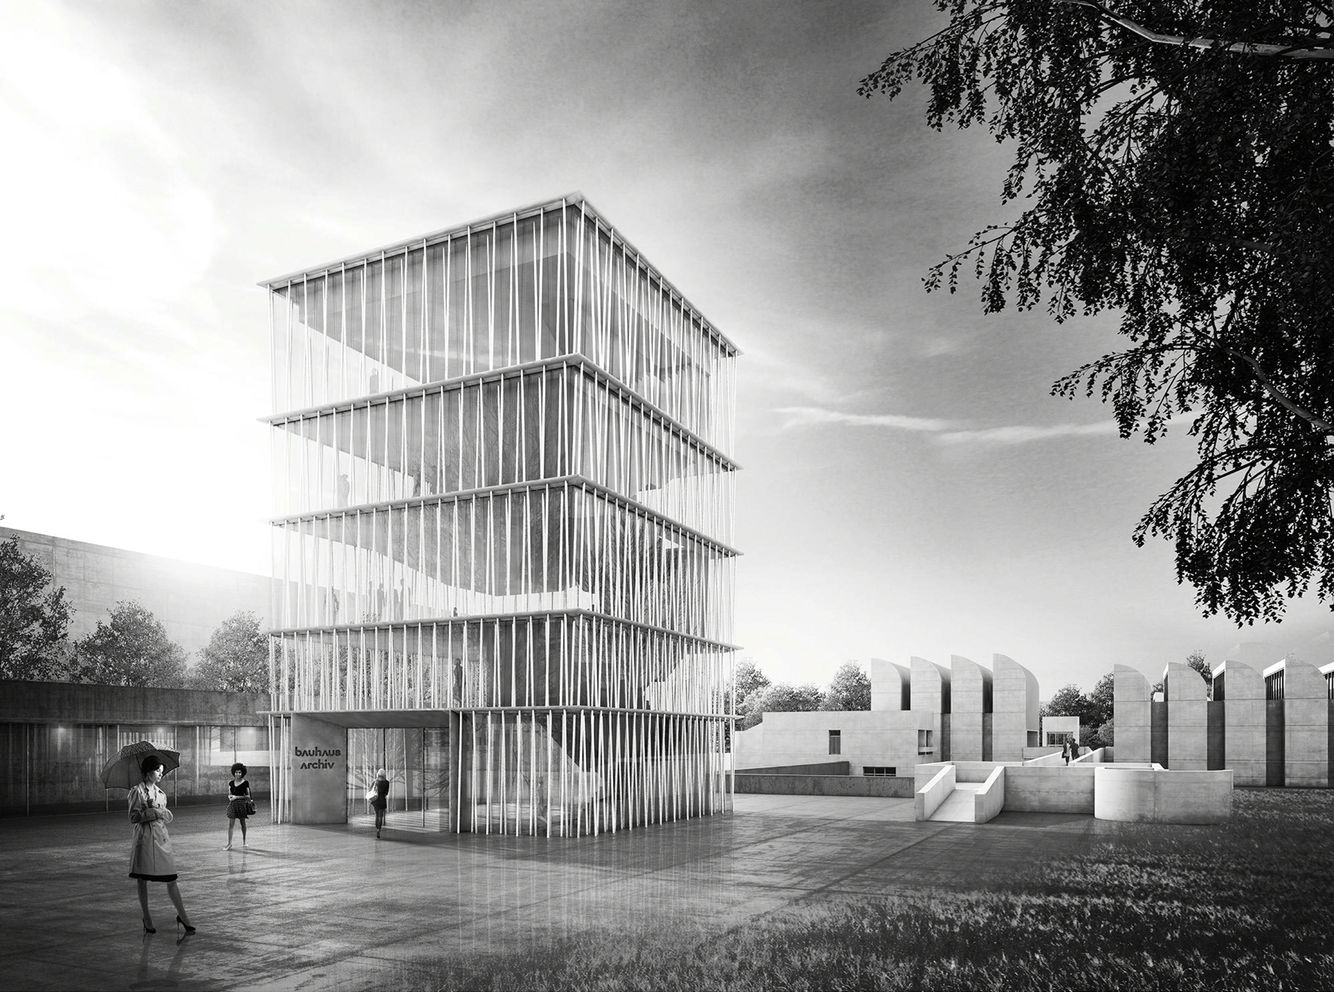 Architect found for new Bauhaus museum in Berlin 'After